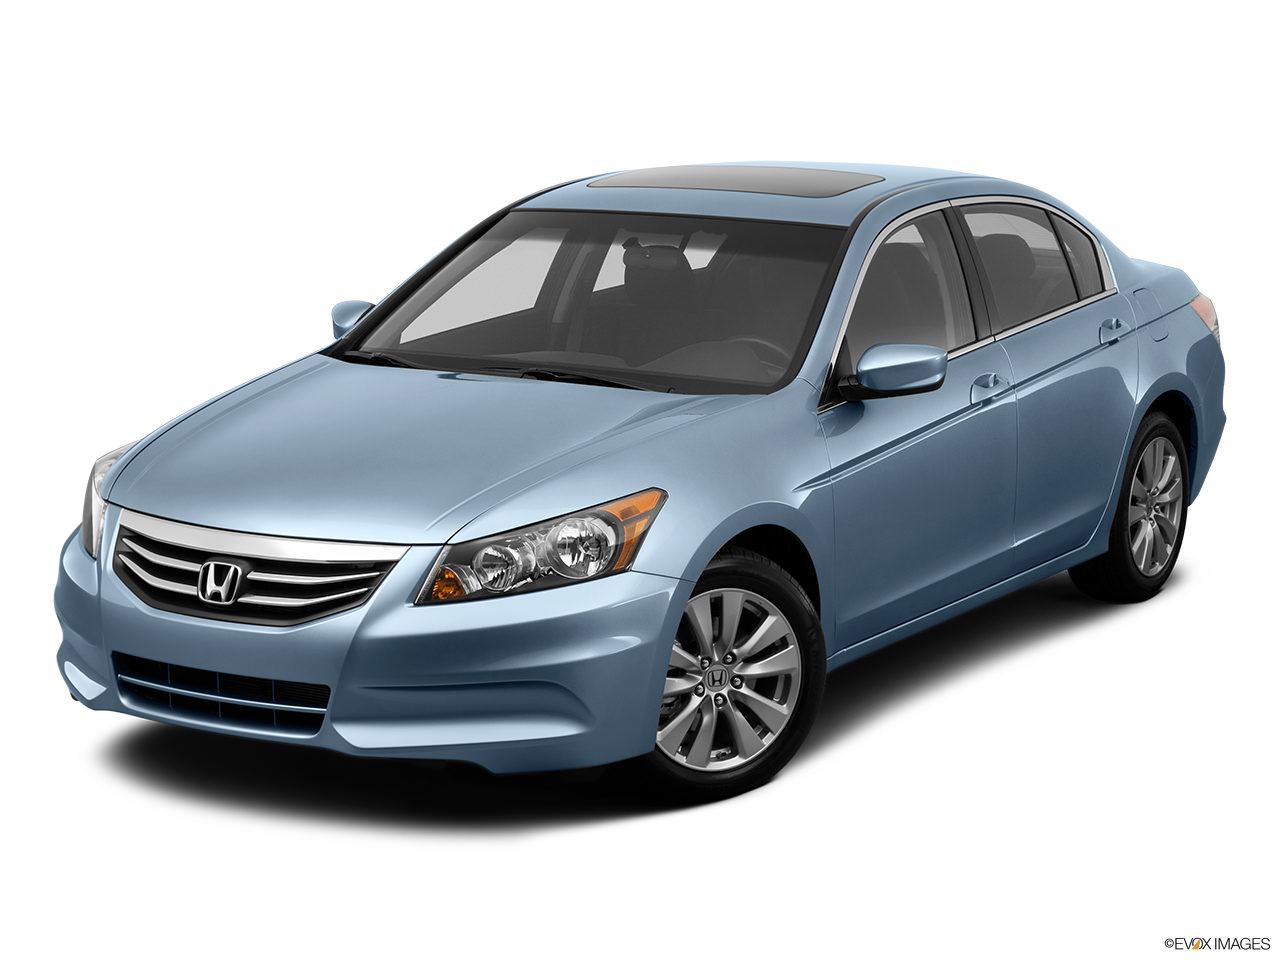 Honda Accord Vs Civic >> 2012 Honda Accord Vs 2012 Honda Civic Which One Should I Buy